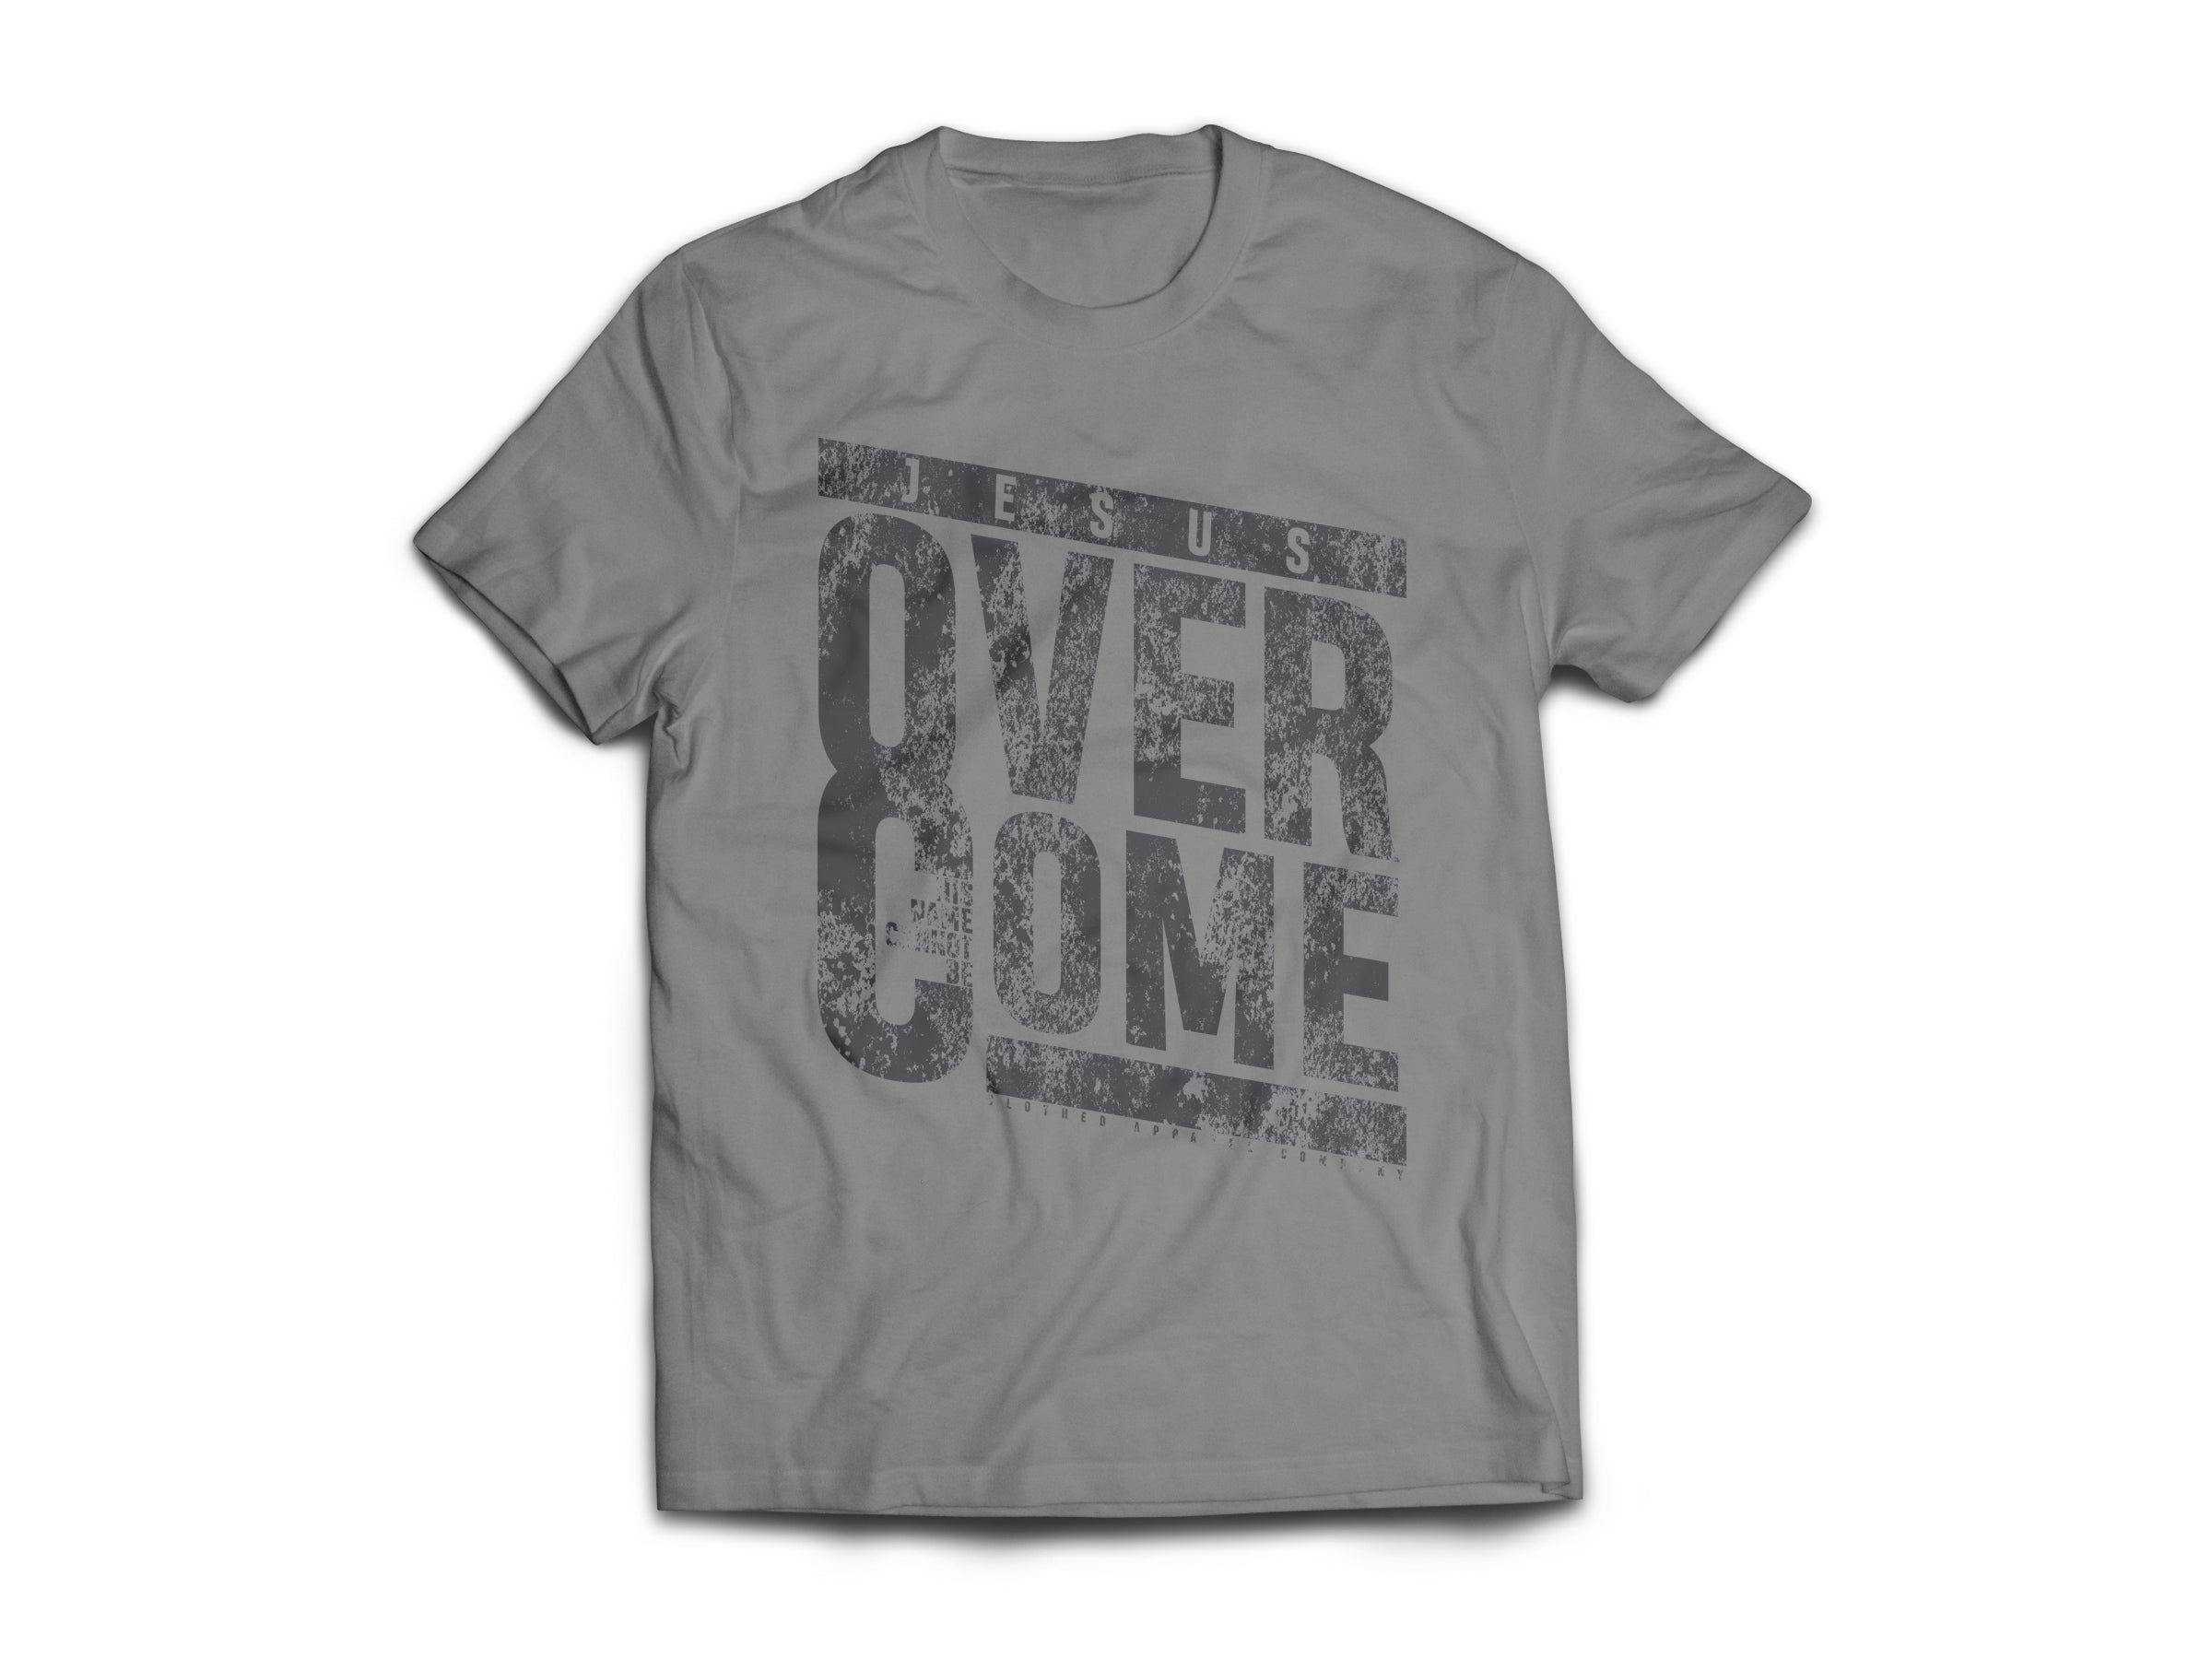 CLOTHED™ Cannot Be Overcome Tee.